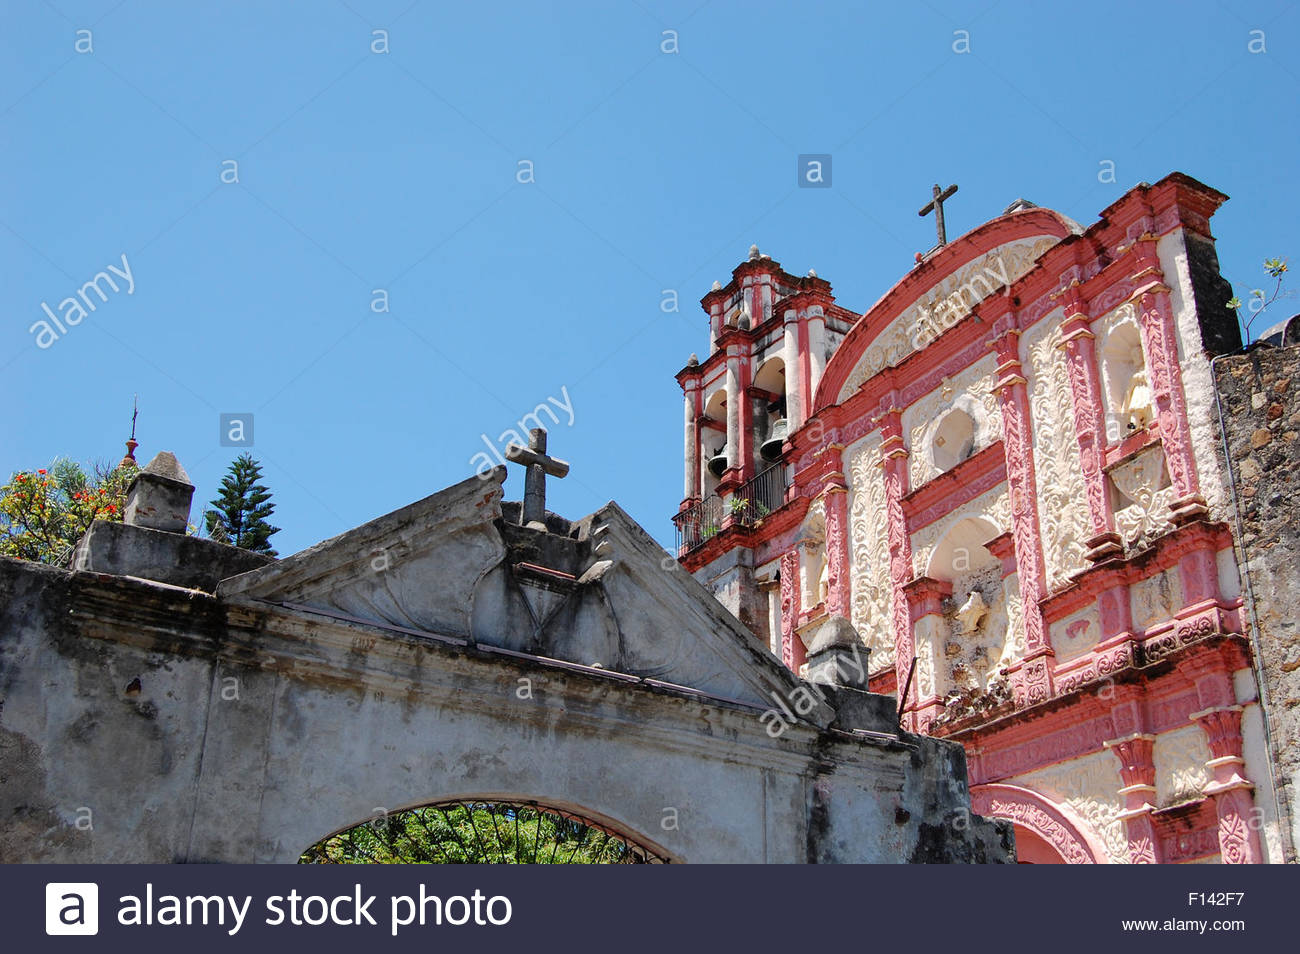 Street Shot Cuernavaca Mexico Looking At The Church Tercera Orden Chapel Historic Mexican Architecture